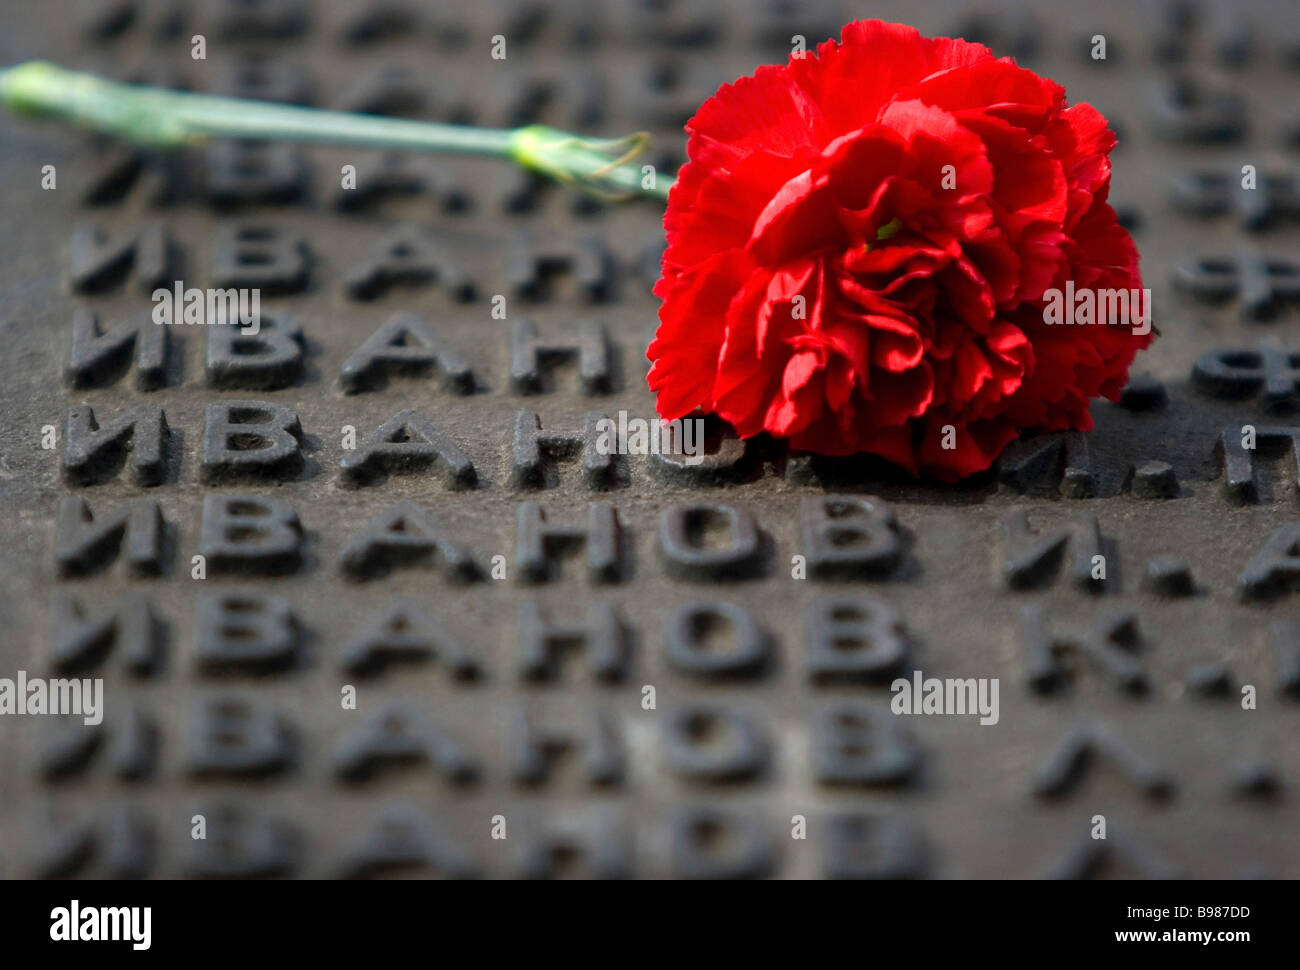 Flowers on a memorial to soldiers killed in the 1941 1945 Great Patriotic War against Nazi Germany - Stock Image